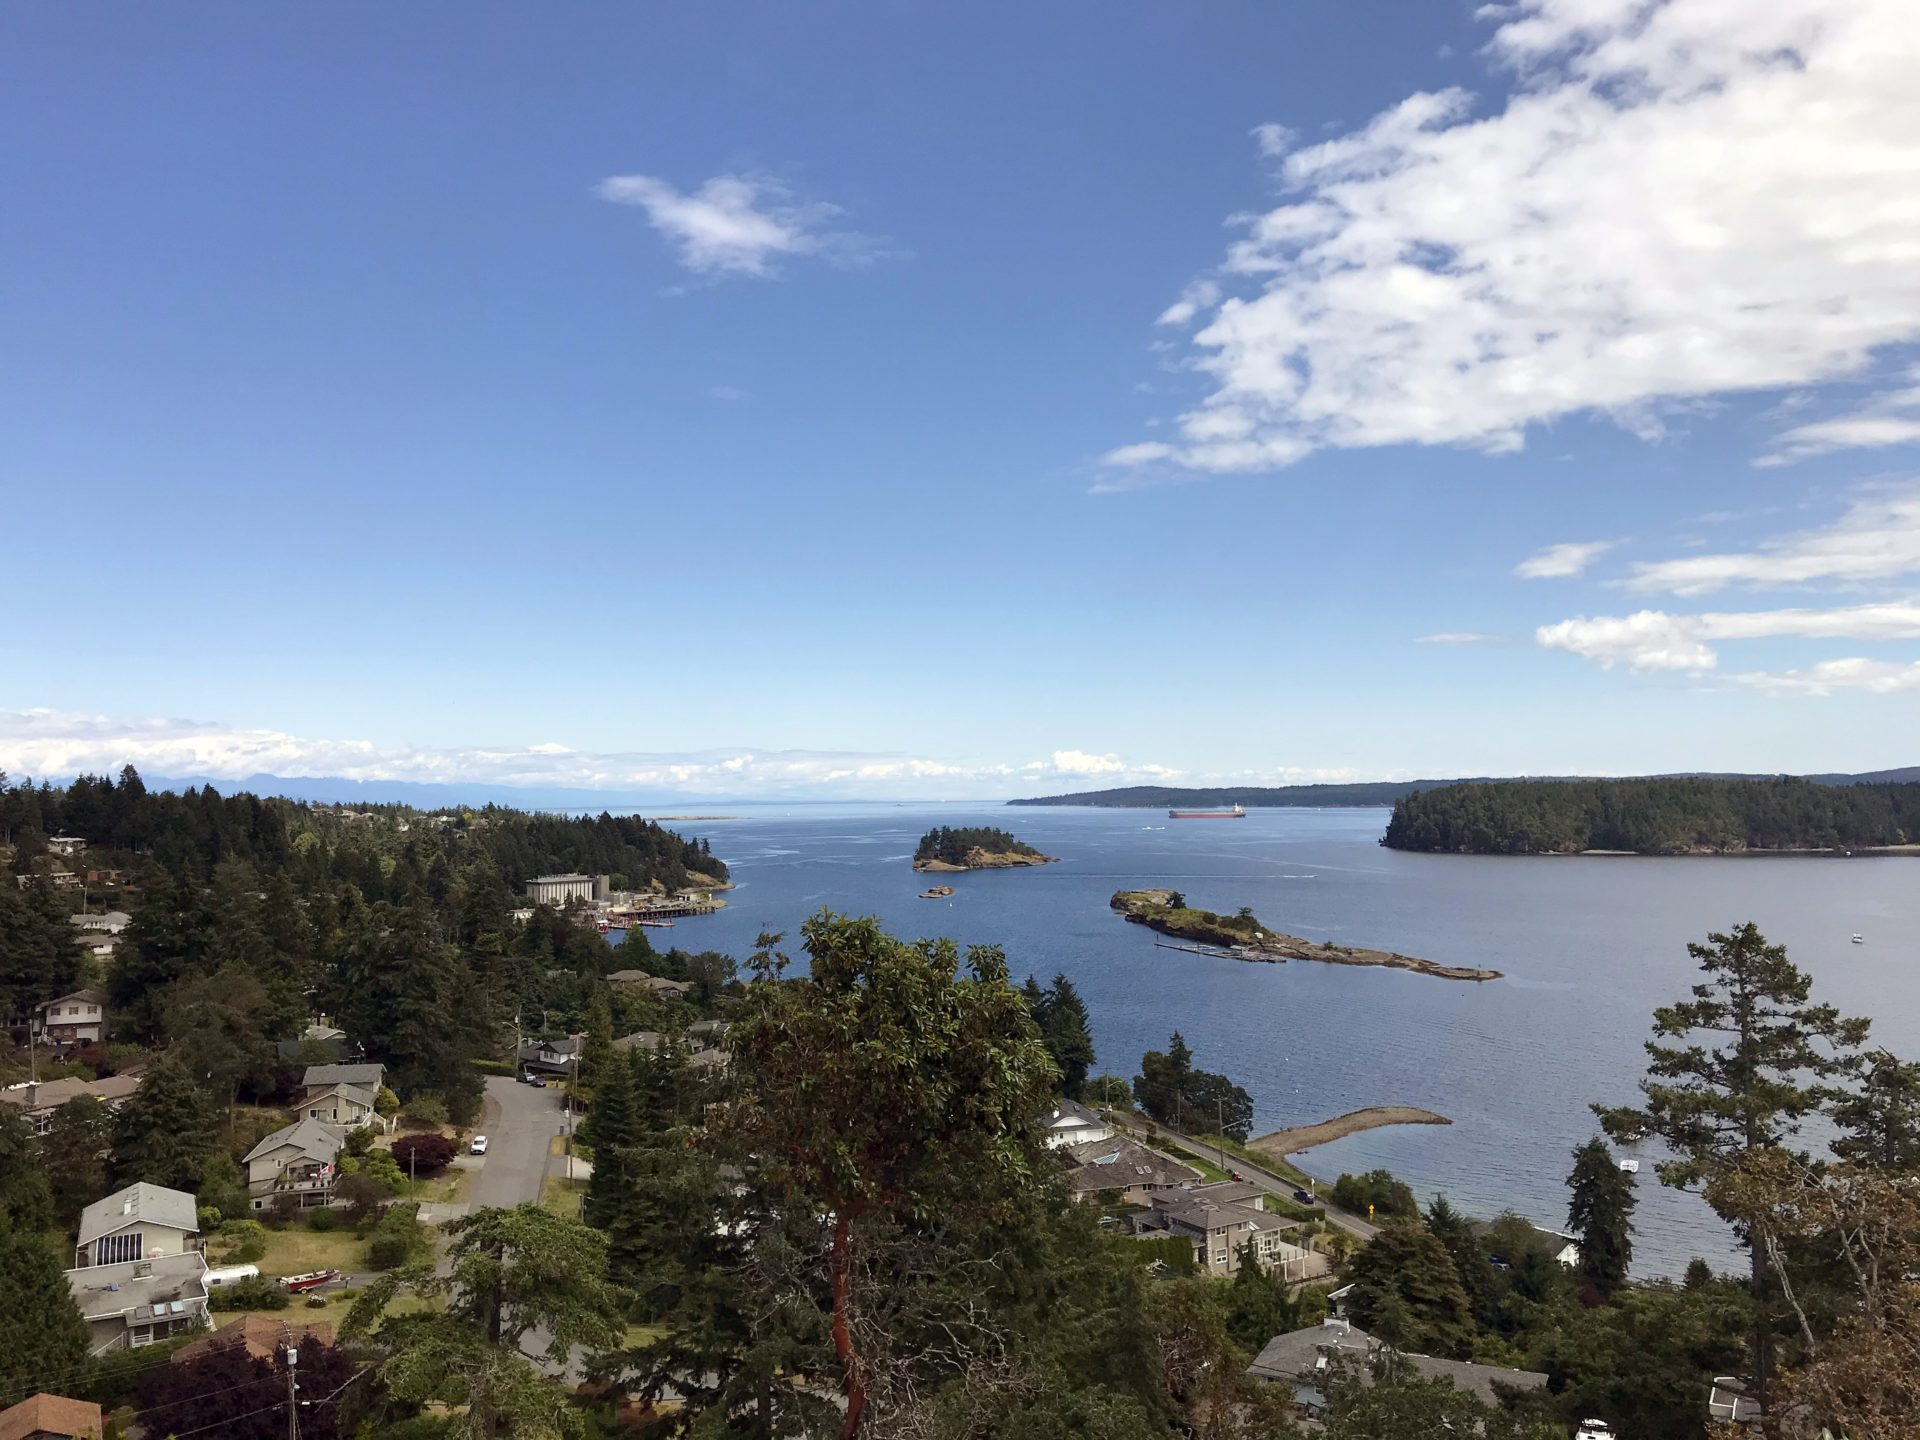 Things to do in Nanaimo, British Columbia